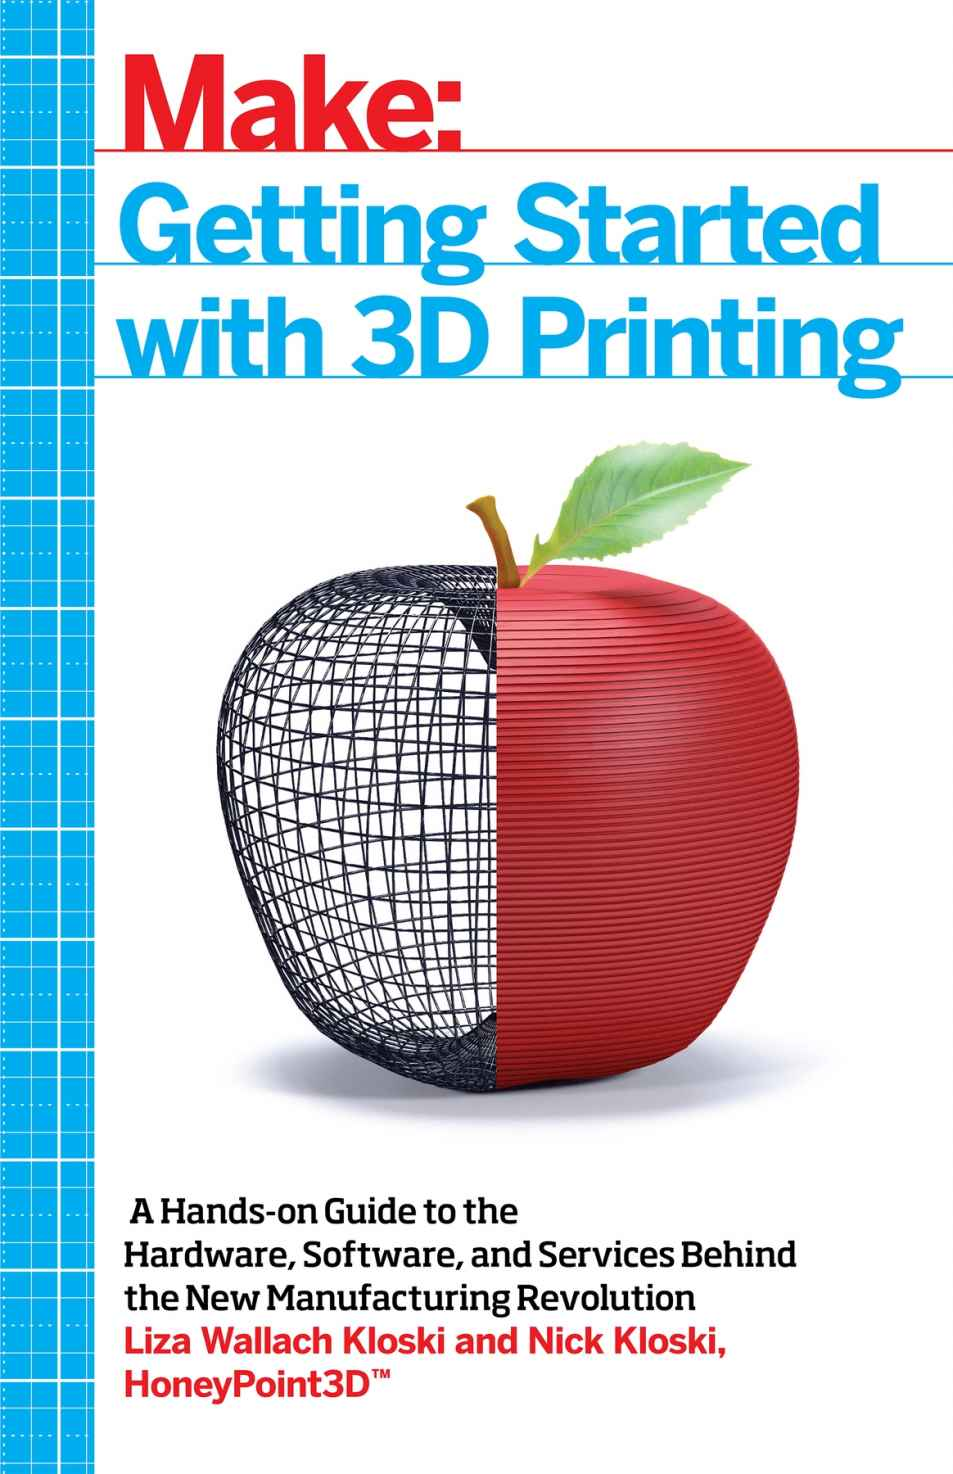 Make:Getting Started with 3D Printing